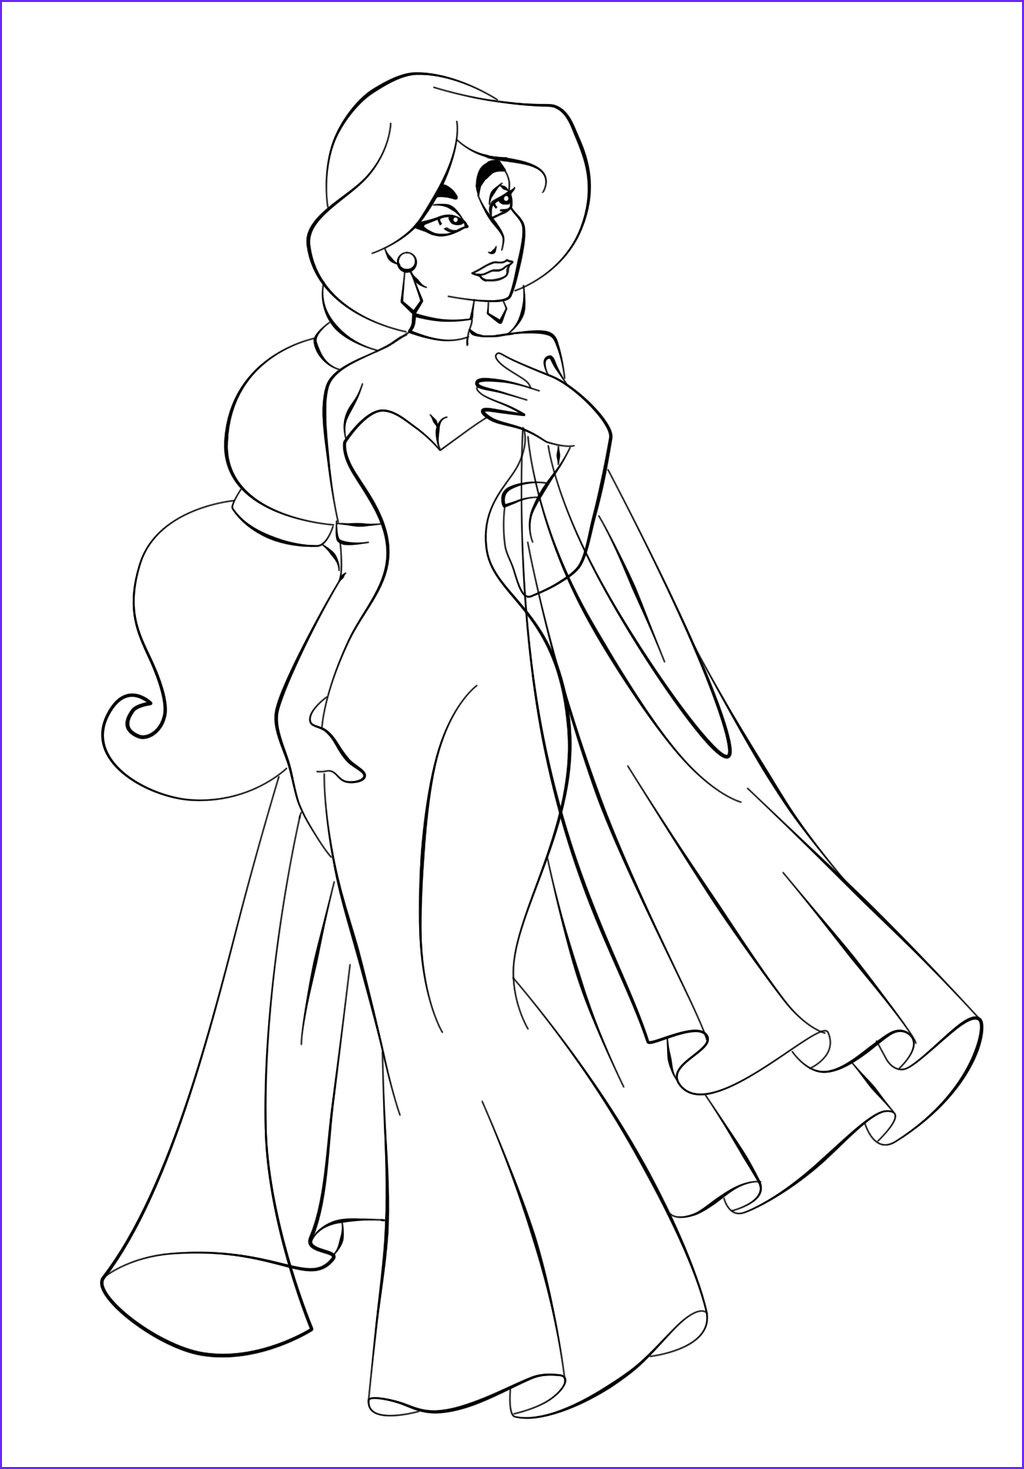 Coloring Pages for Free Beautiful Gallery Free Printable Jasmine Coloring Pages for Kids Best